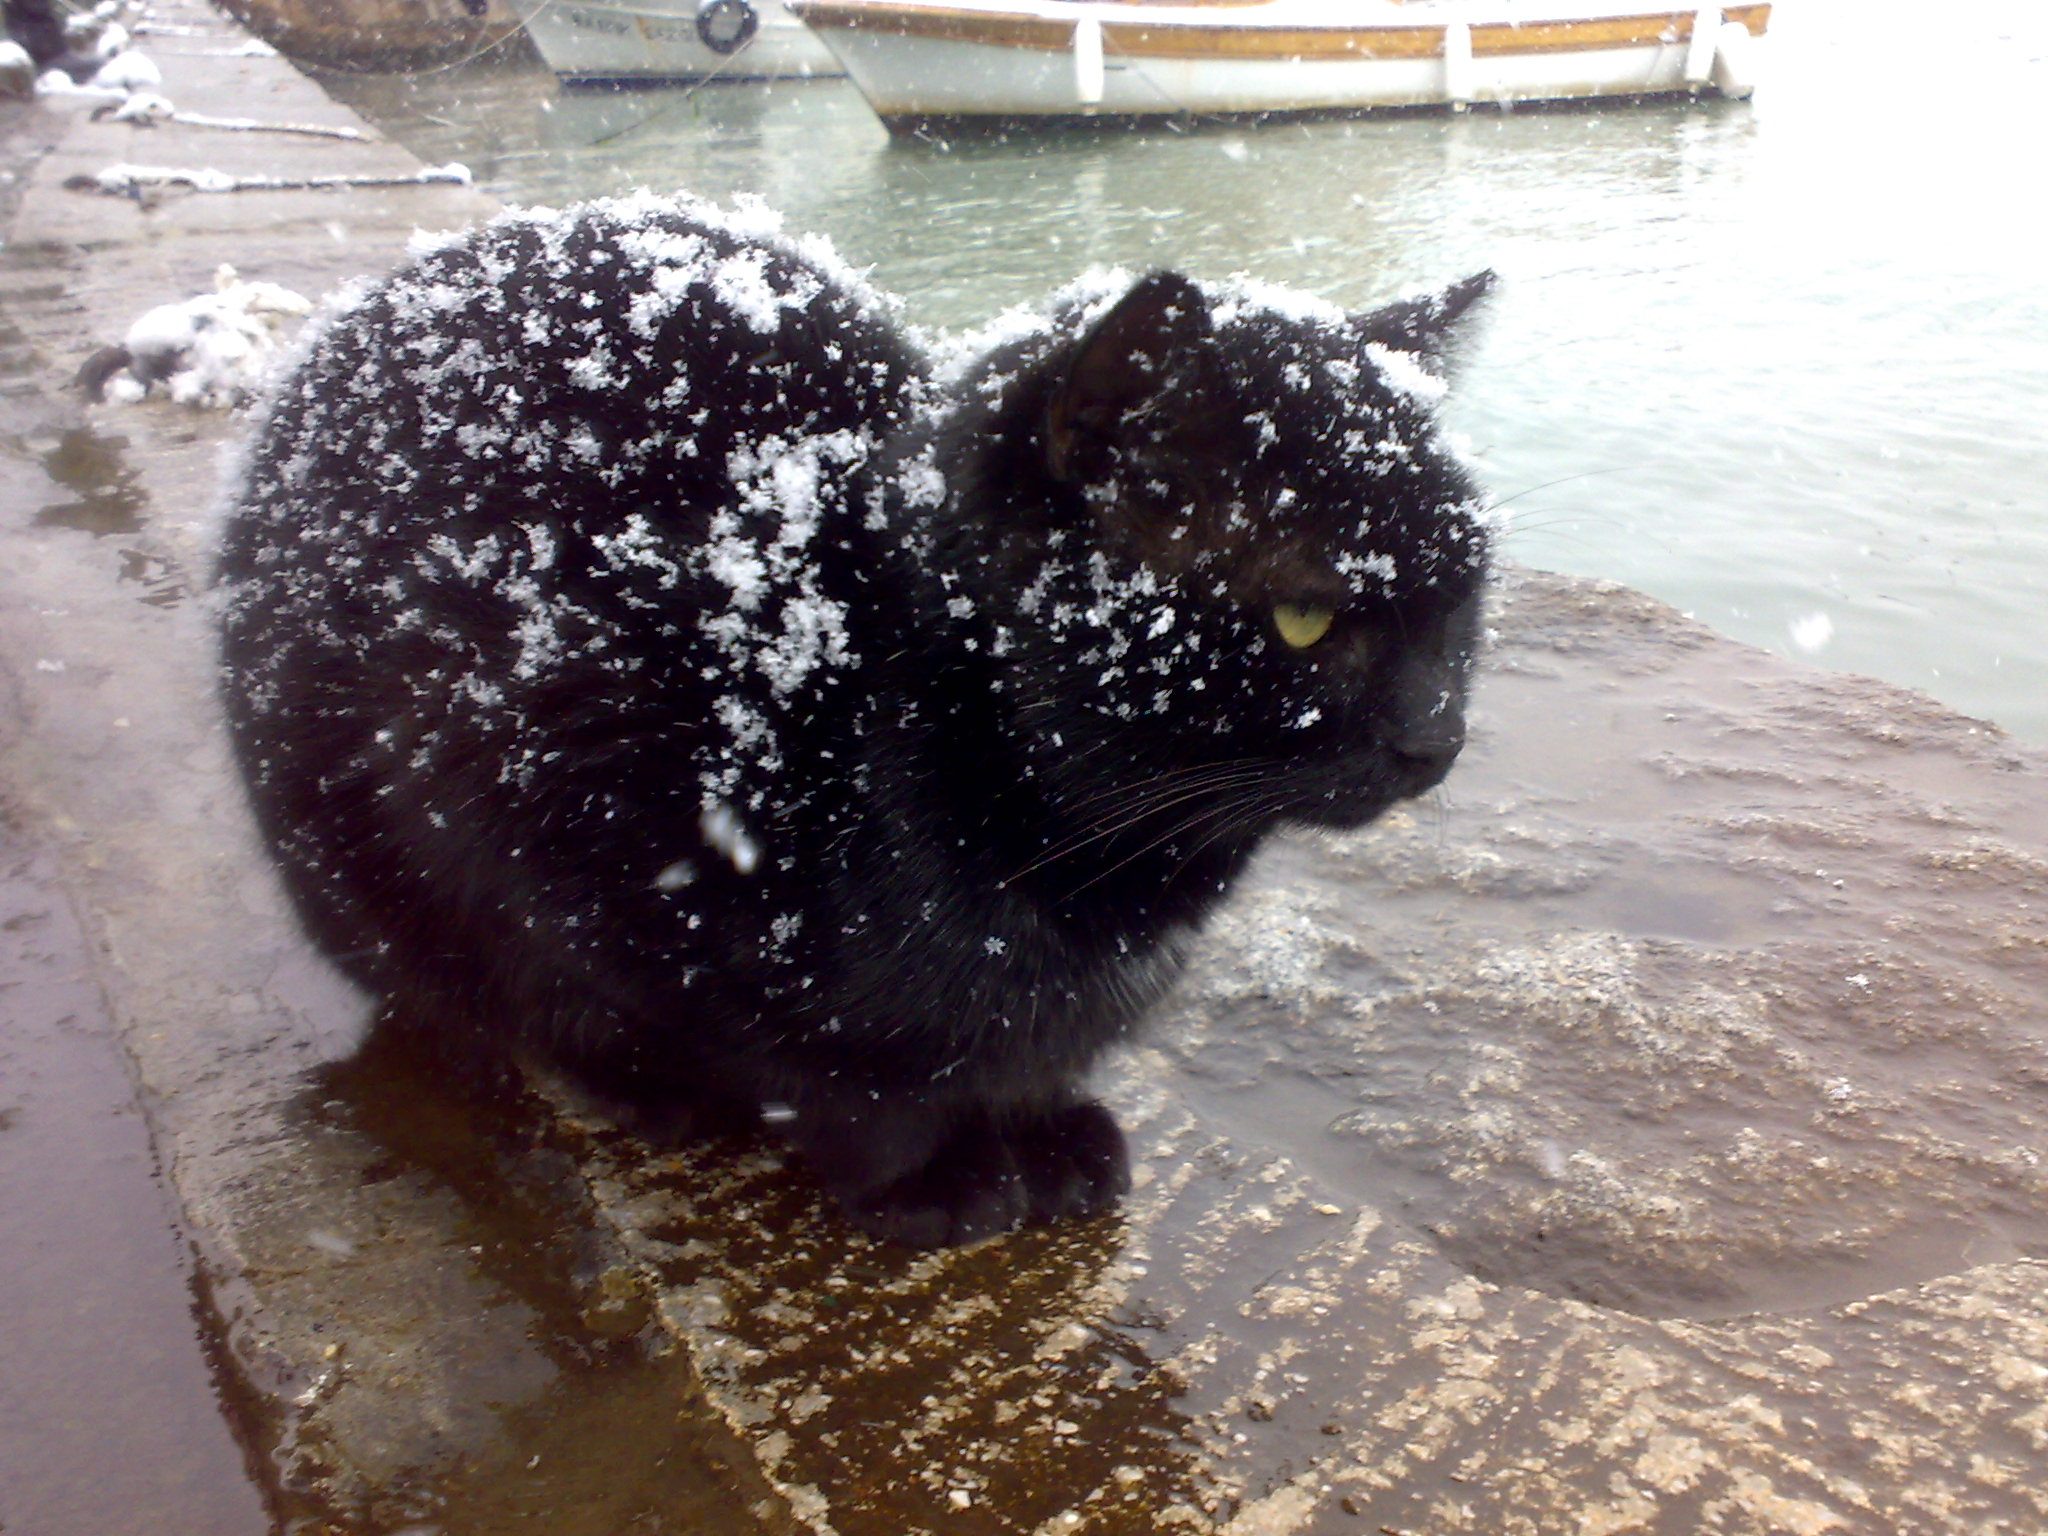 Black_cat_being_snowed_on-2016-05-8-17-47.jpg